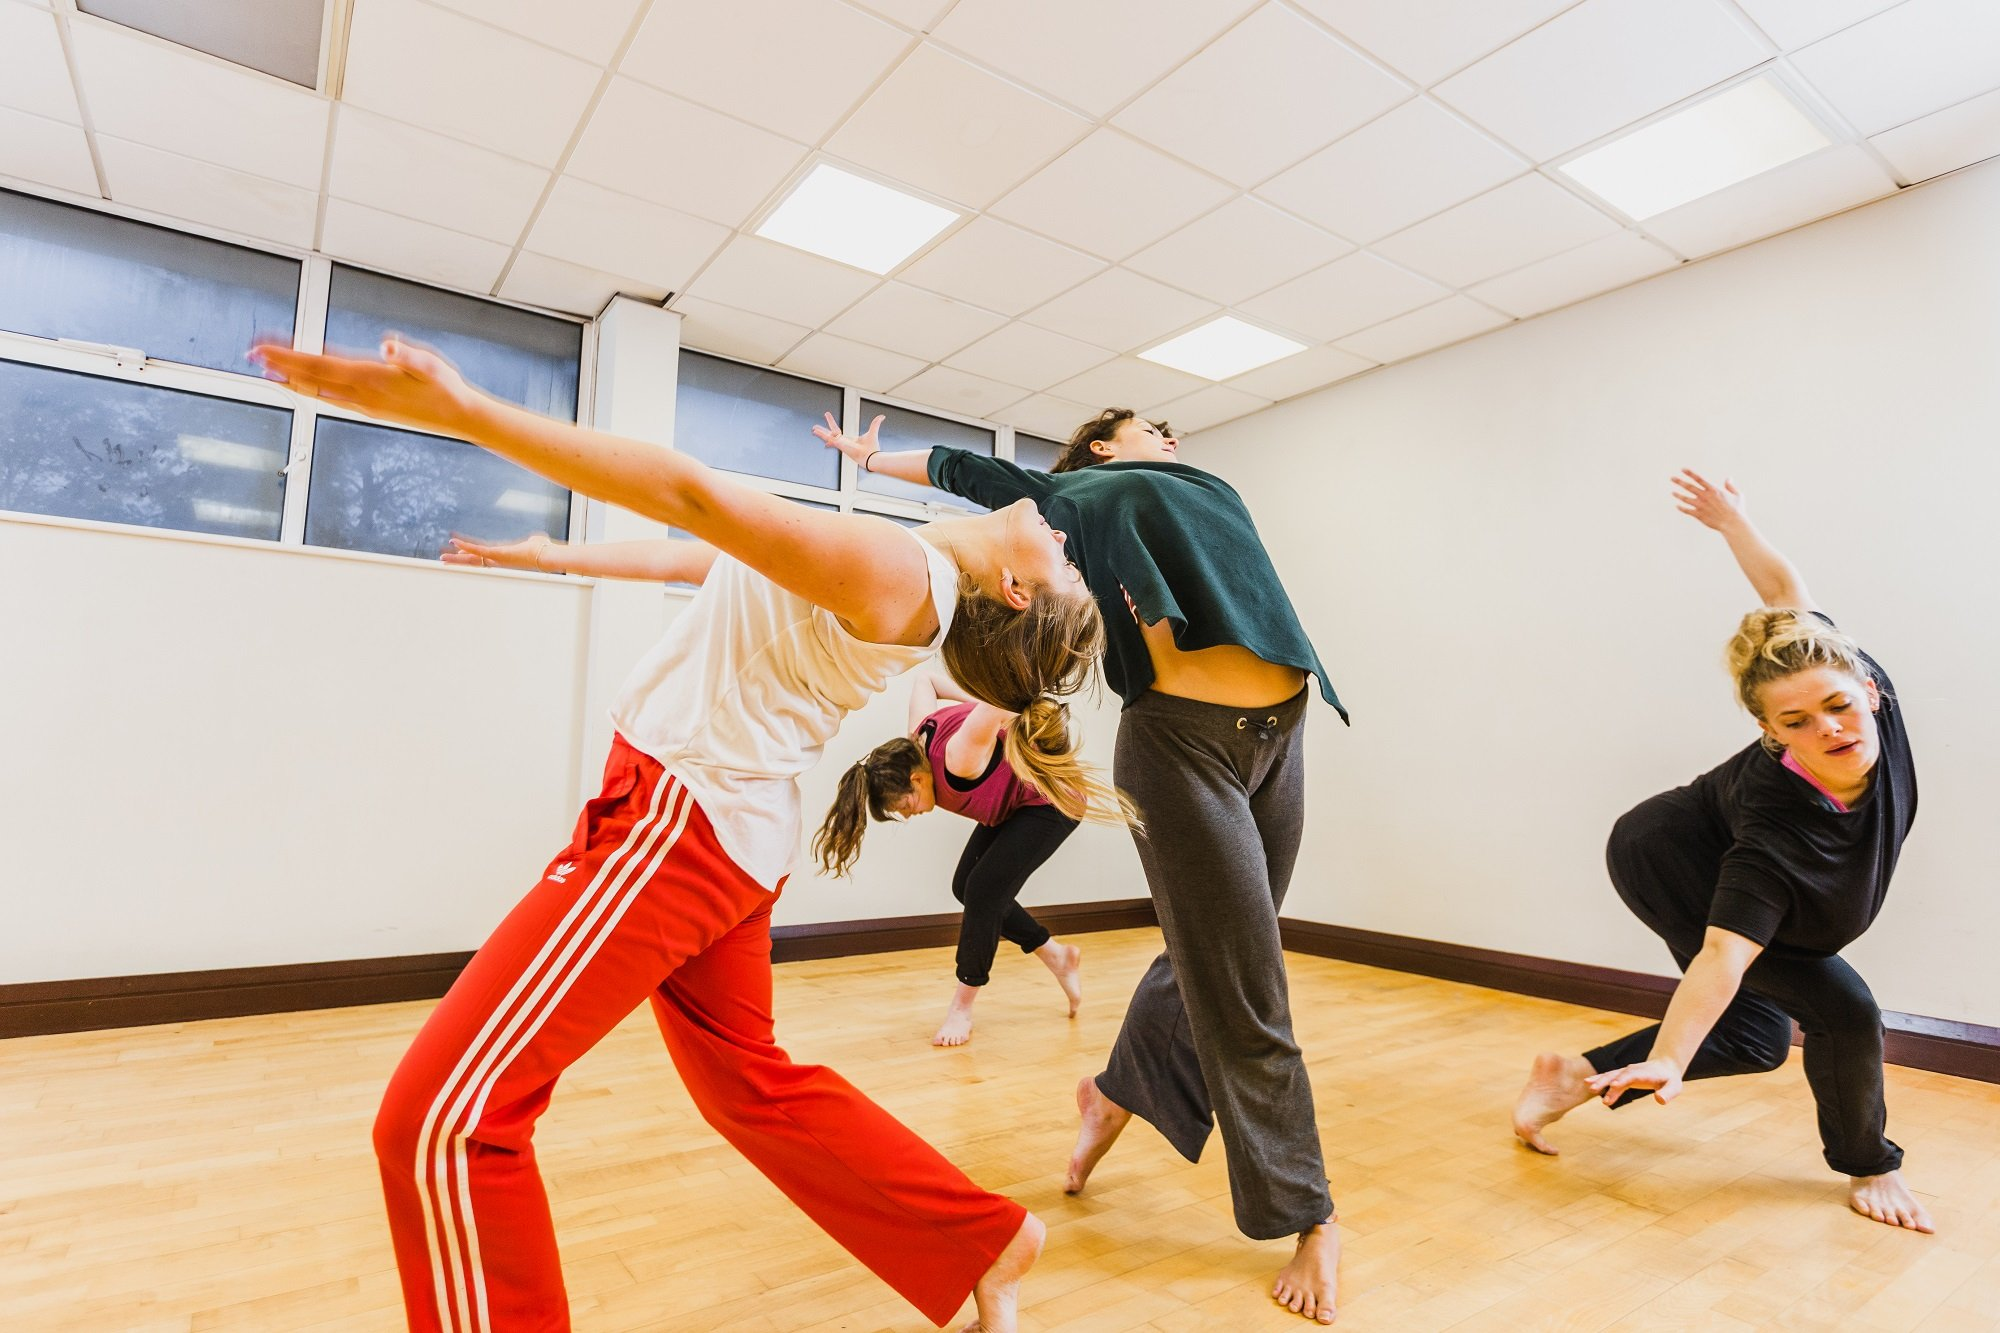 New exchange programme for city's dancers launched by Absolutely Cultured